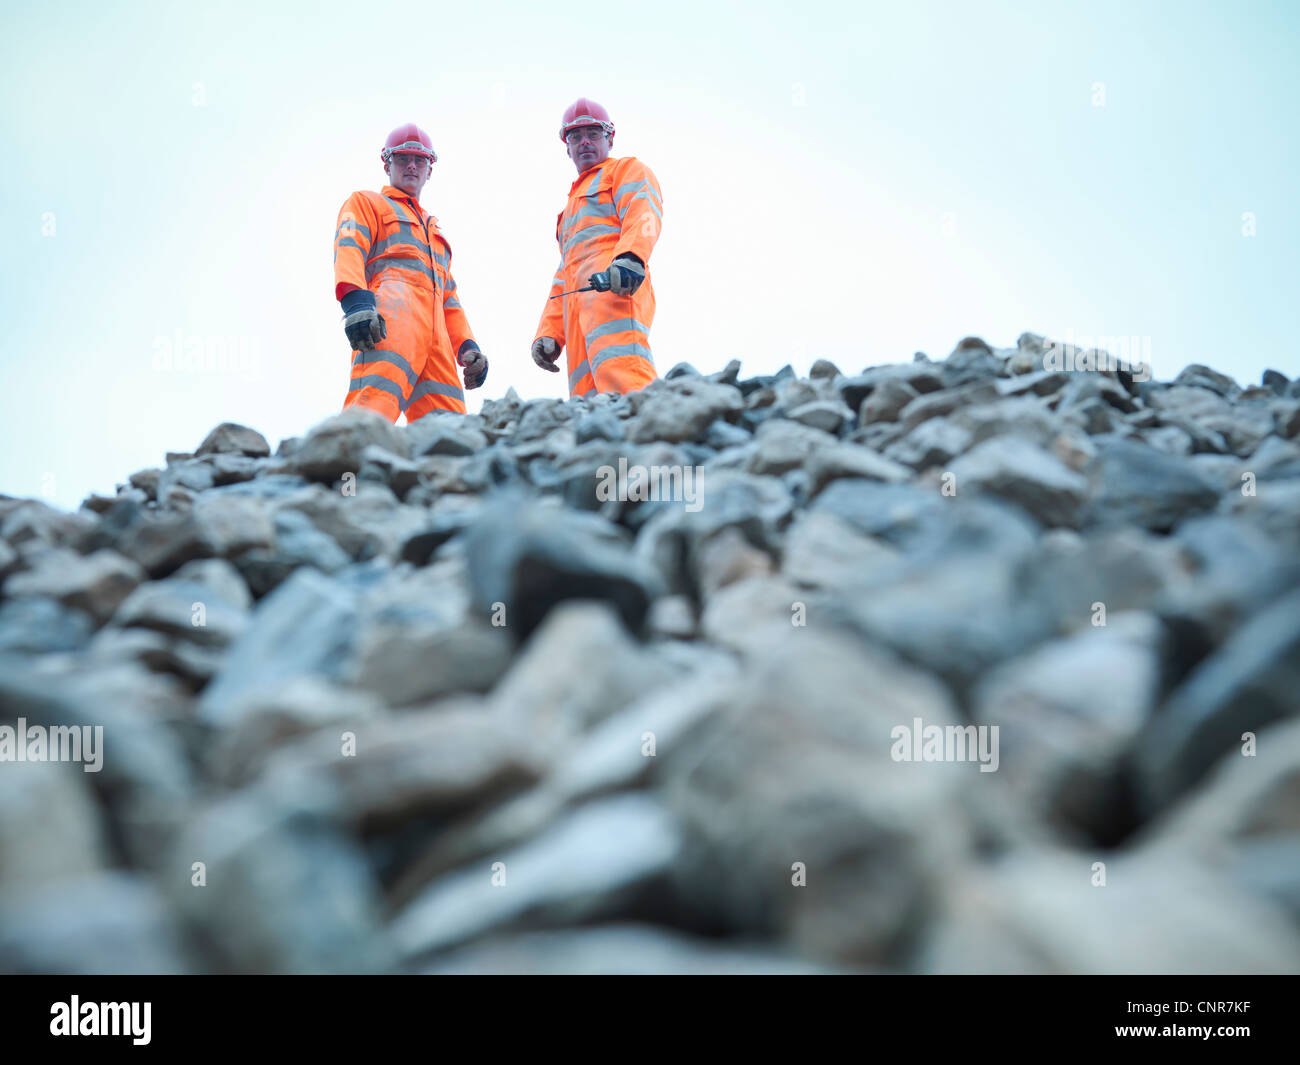 Workers standing on quarry rock pile - Stock Image